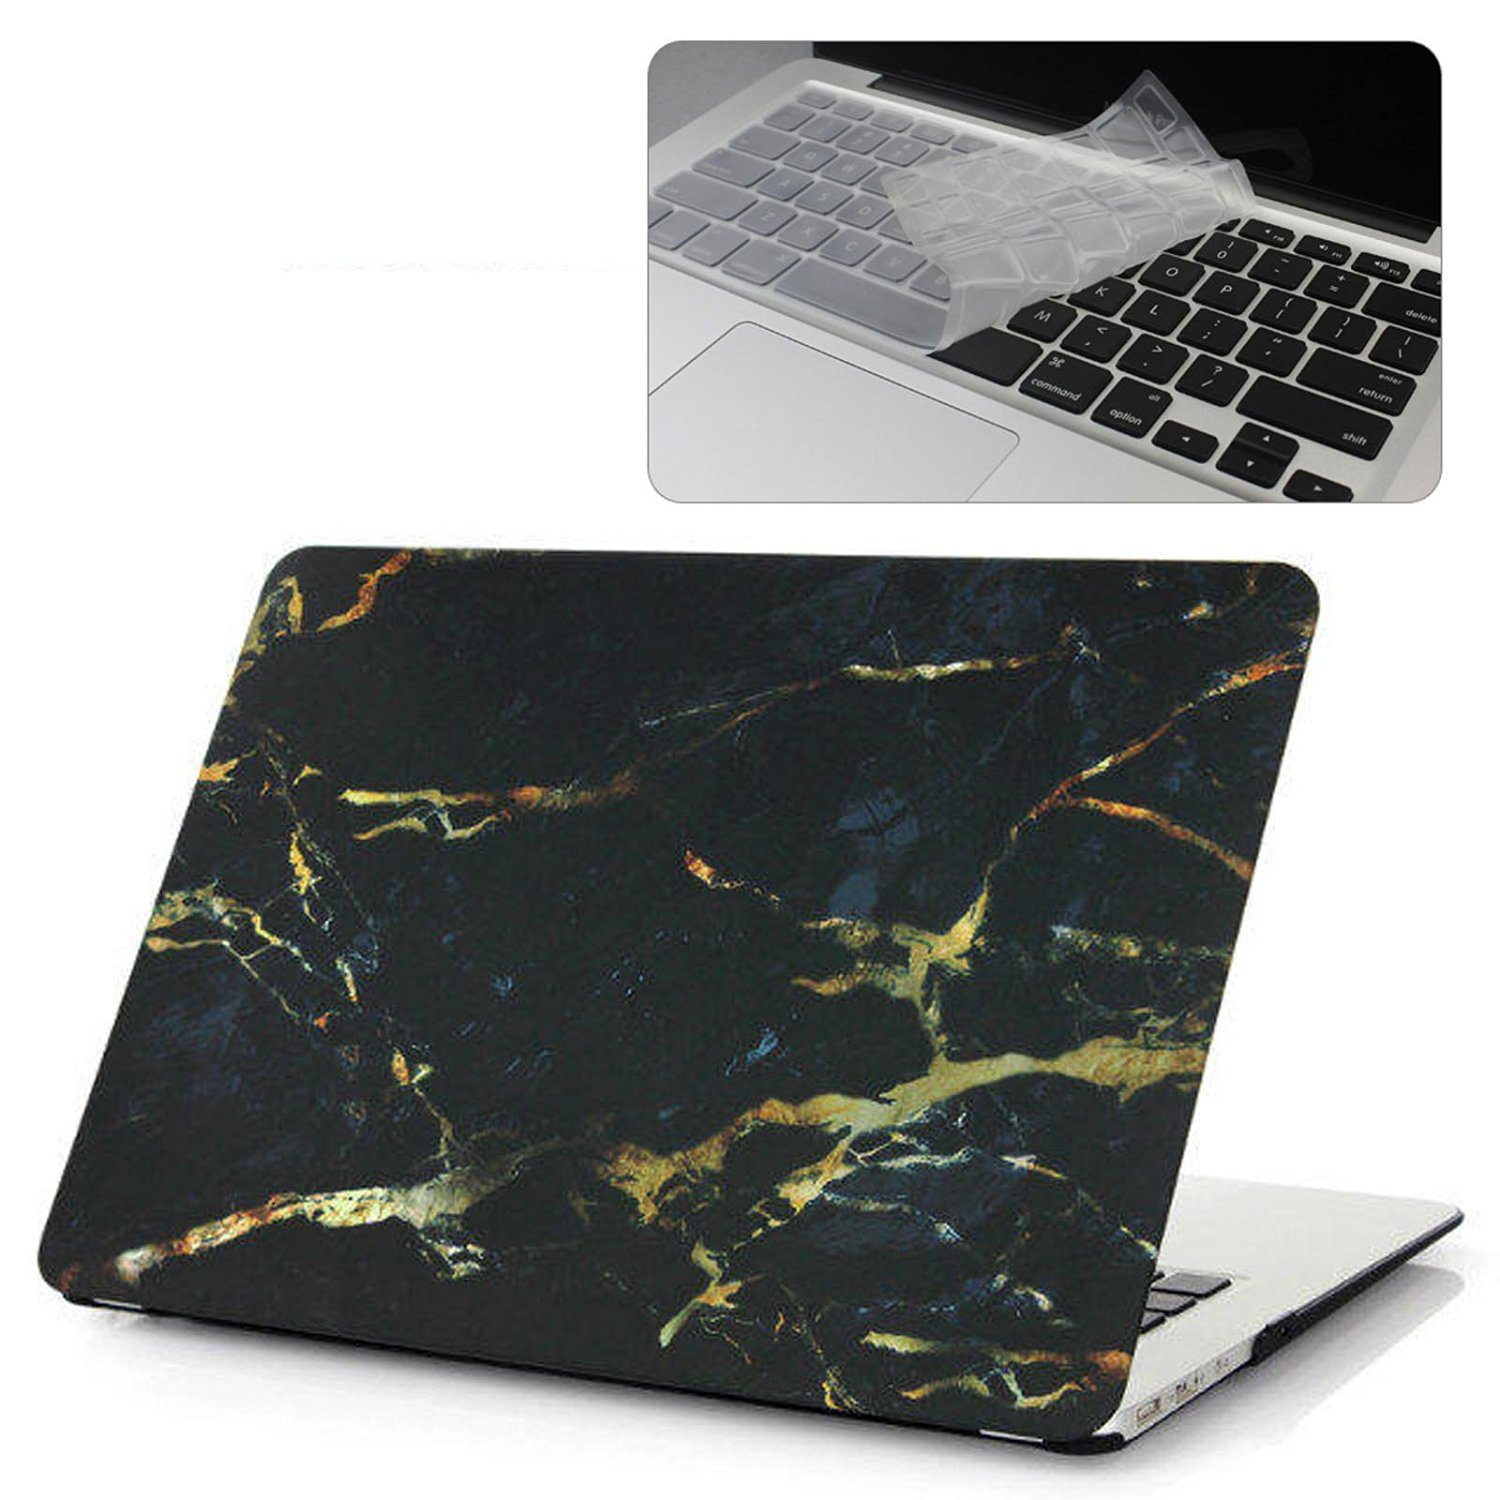 """EWC 2in1 Print Frosted Rubberized Laptop Hard Case Cover and Clear Keyboard Skin for MacBook Pro 13""""13.3"""" inch with CD-ROM (NON Retina Display) A1278 - Black/Gold Marble Pattern"""